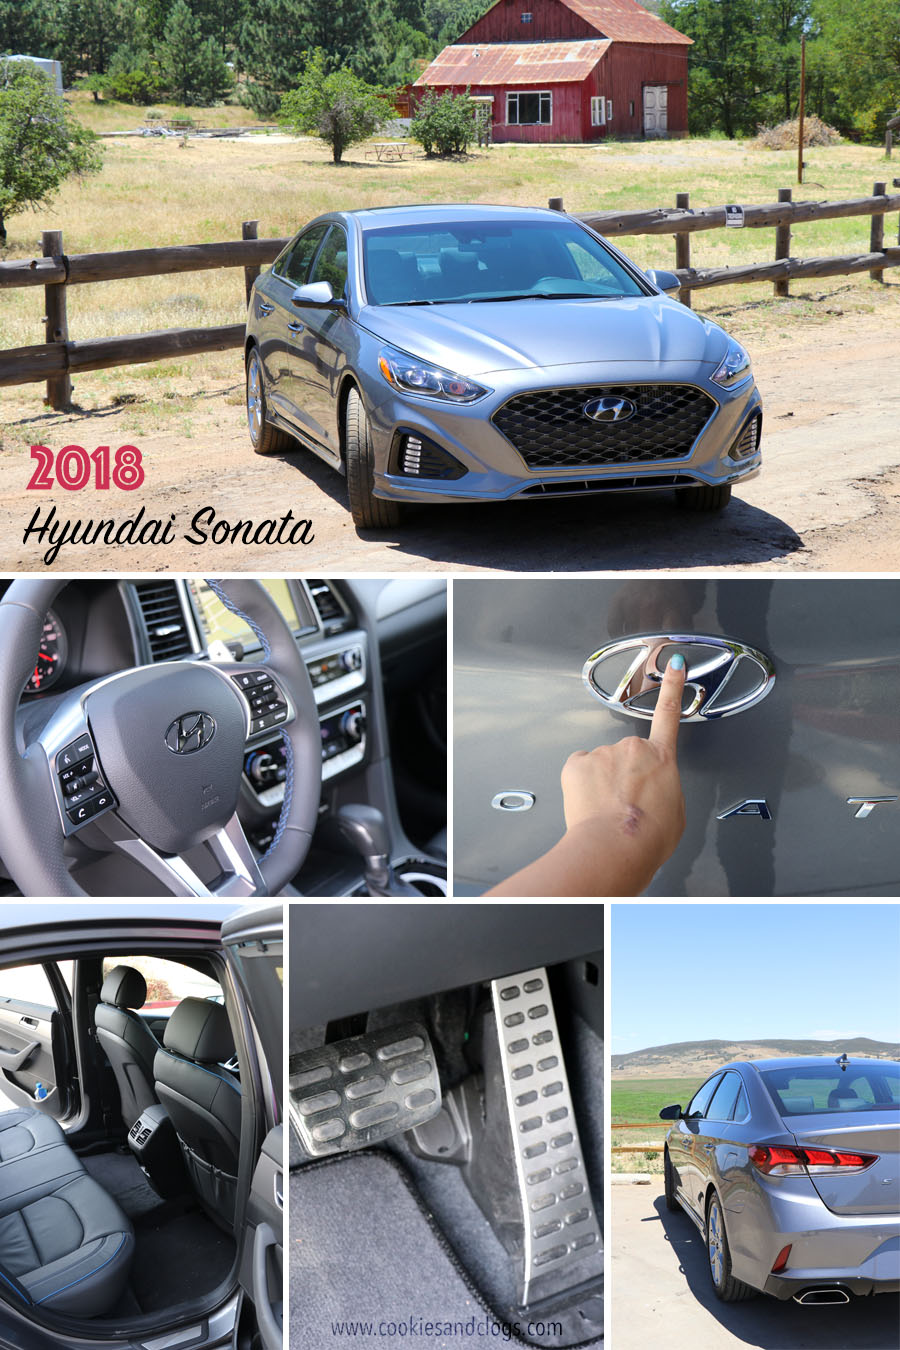 Cookies & Clogs | Giving back to the La Jolla, CA and San Diego, CA community +  2018 Hyundai Sonata review.